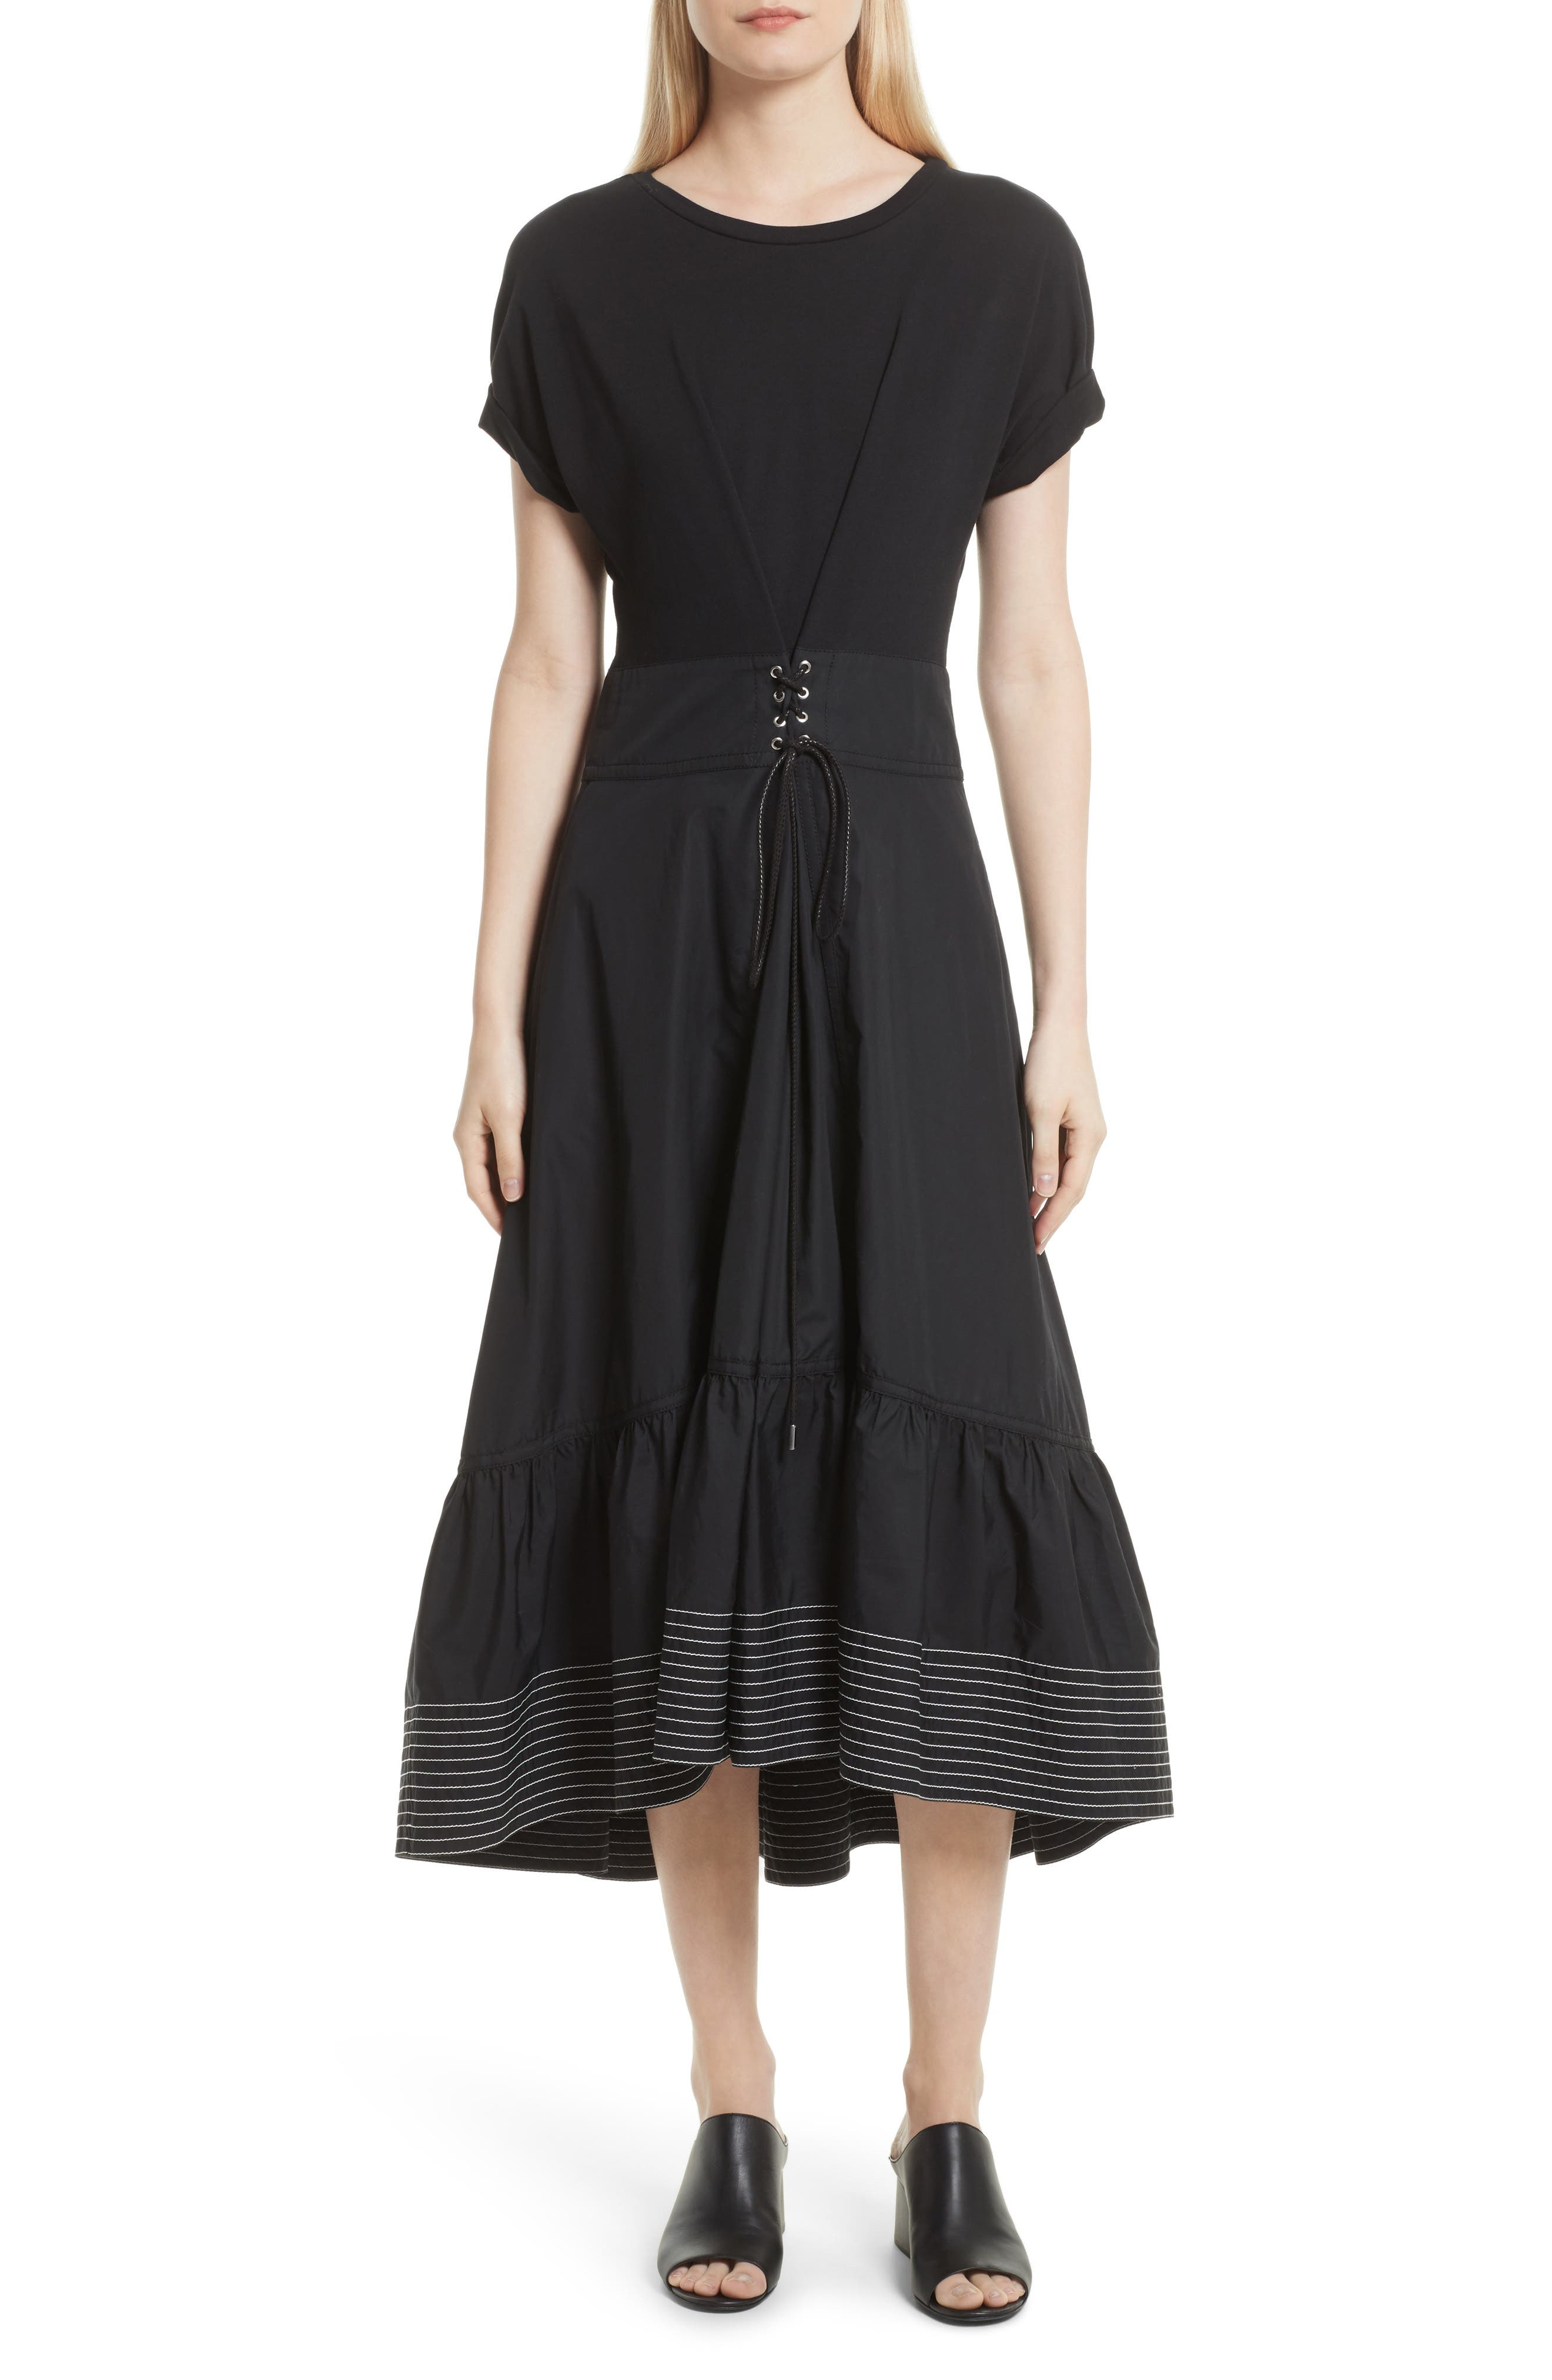 Alternate Image 1 Selected - 3.1 Phillip Lim Corset Waist Dress